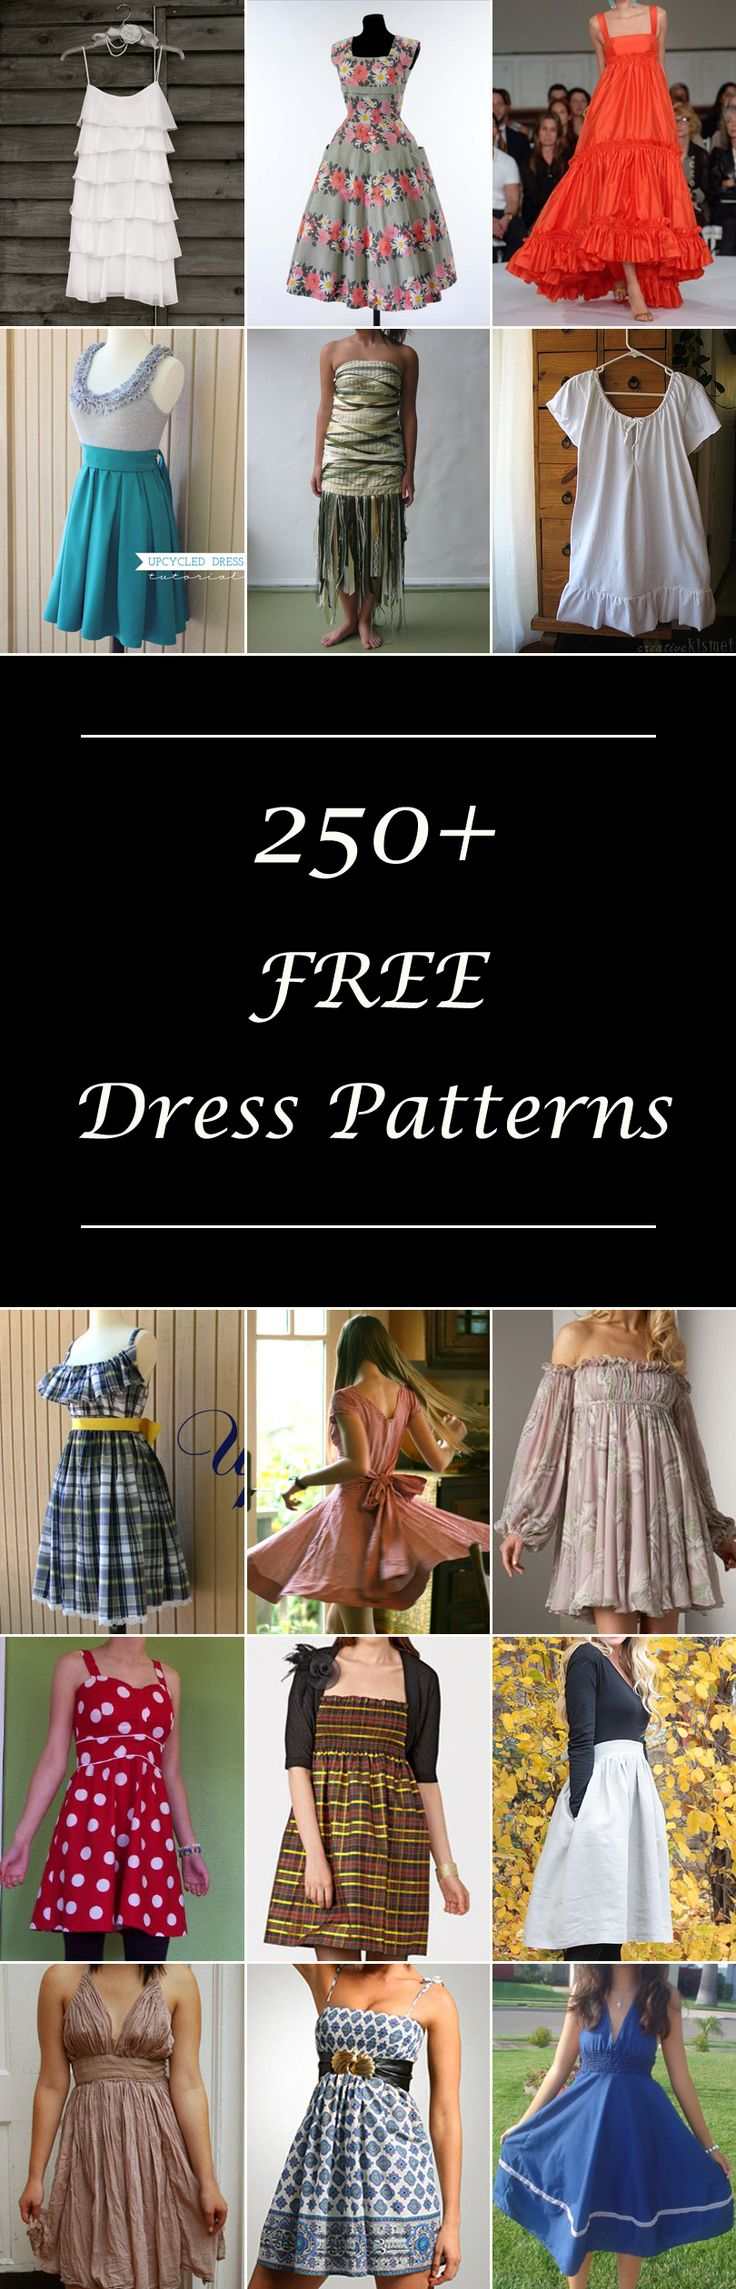 Tons of free dress patterns